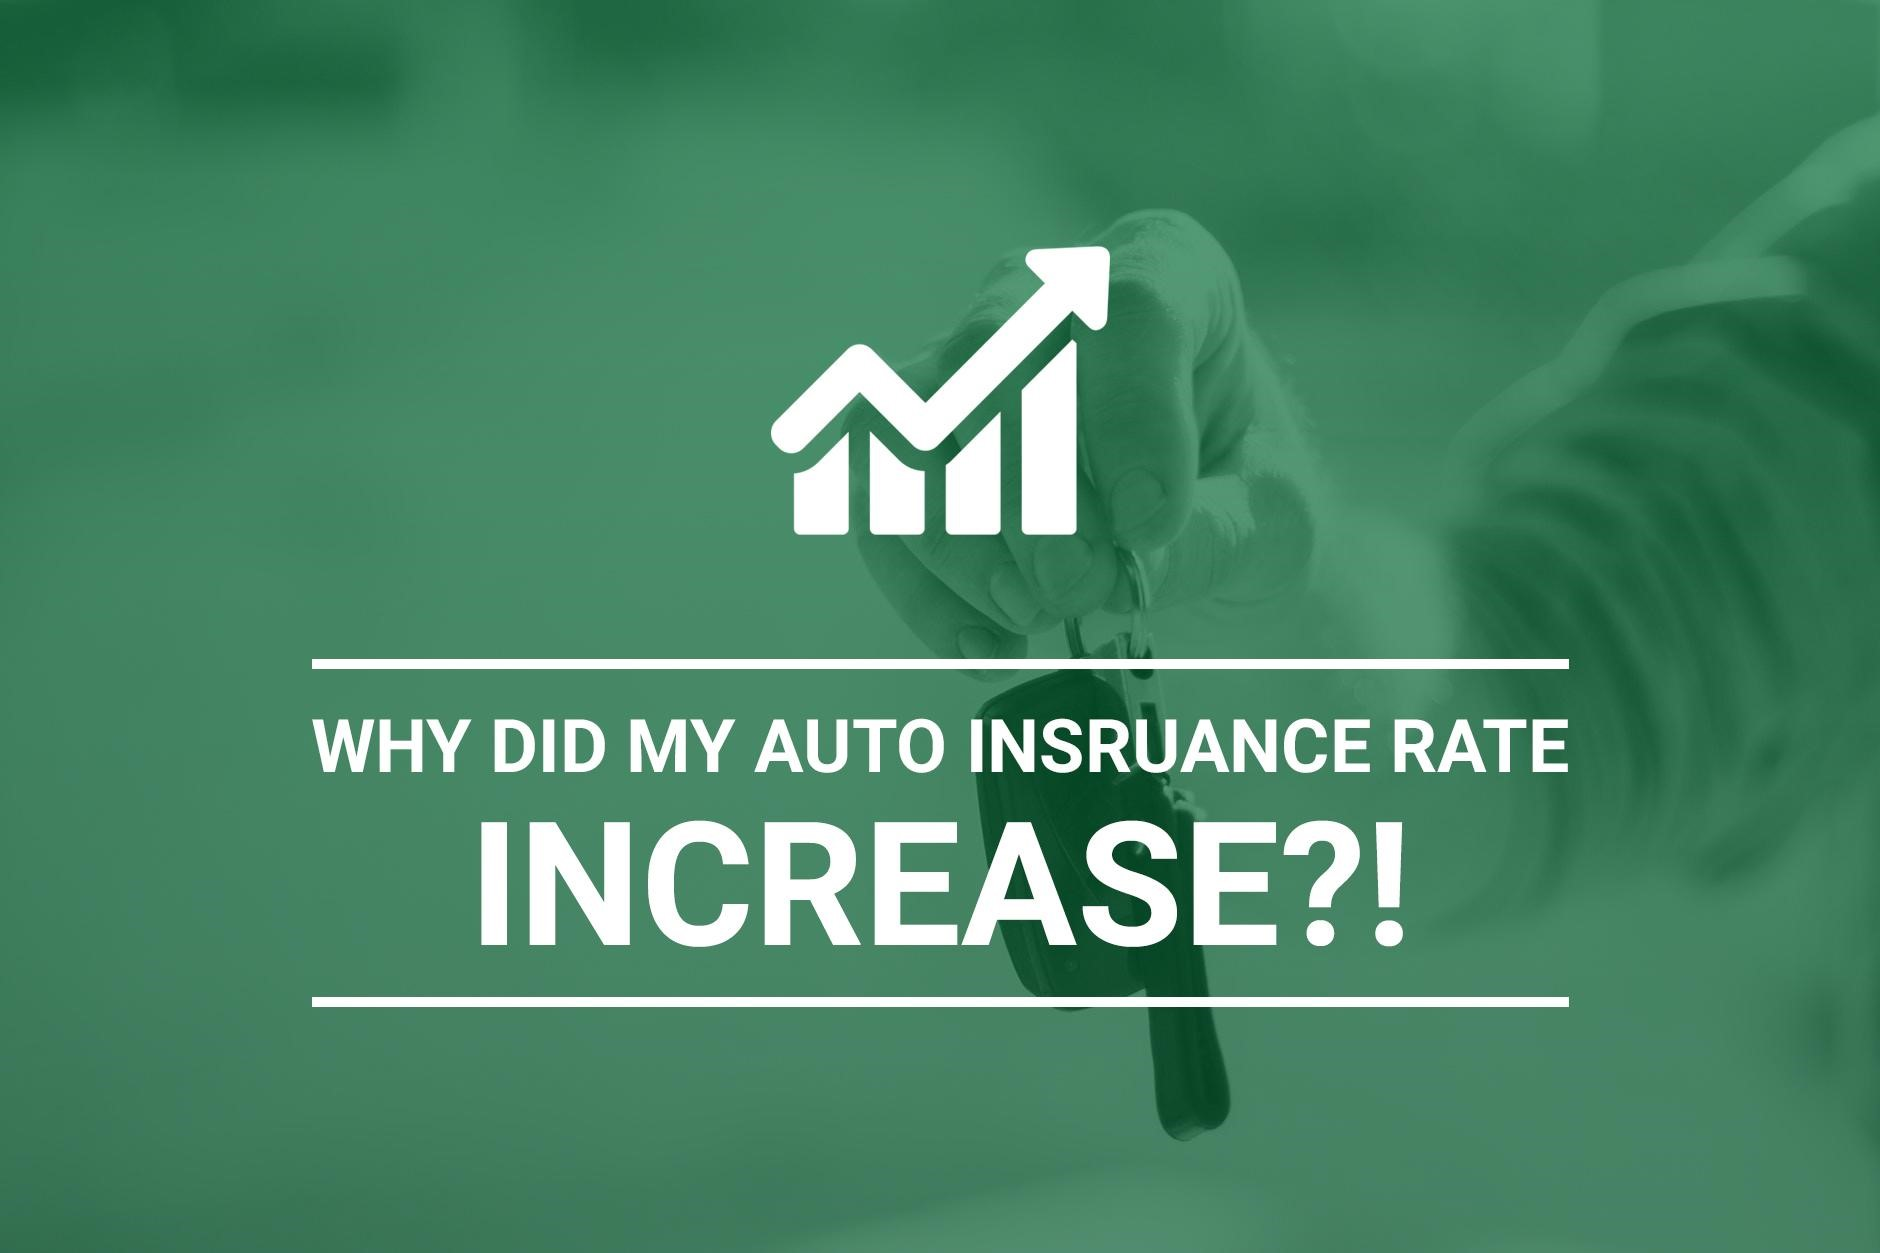 Reasons For Auto Insurance Rate Increases | Why Did My ...